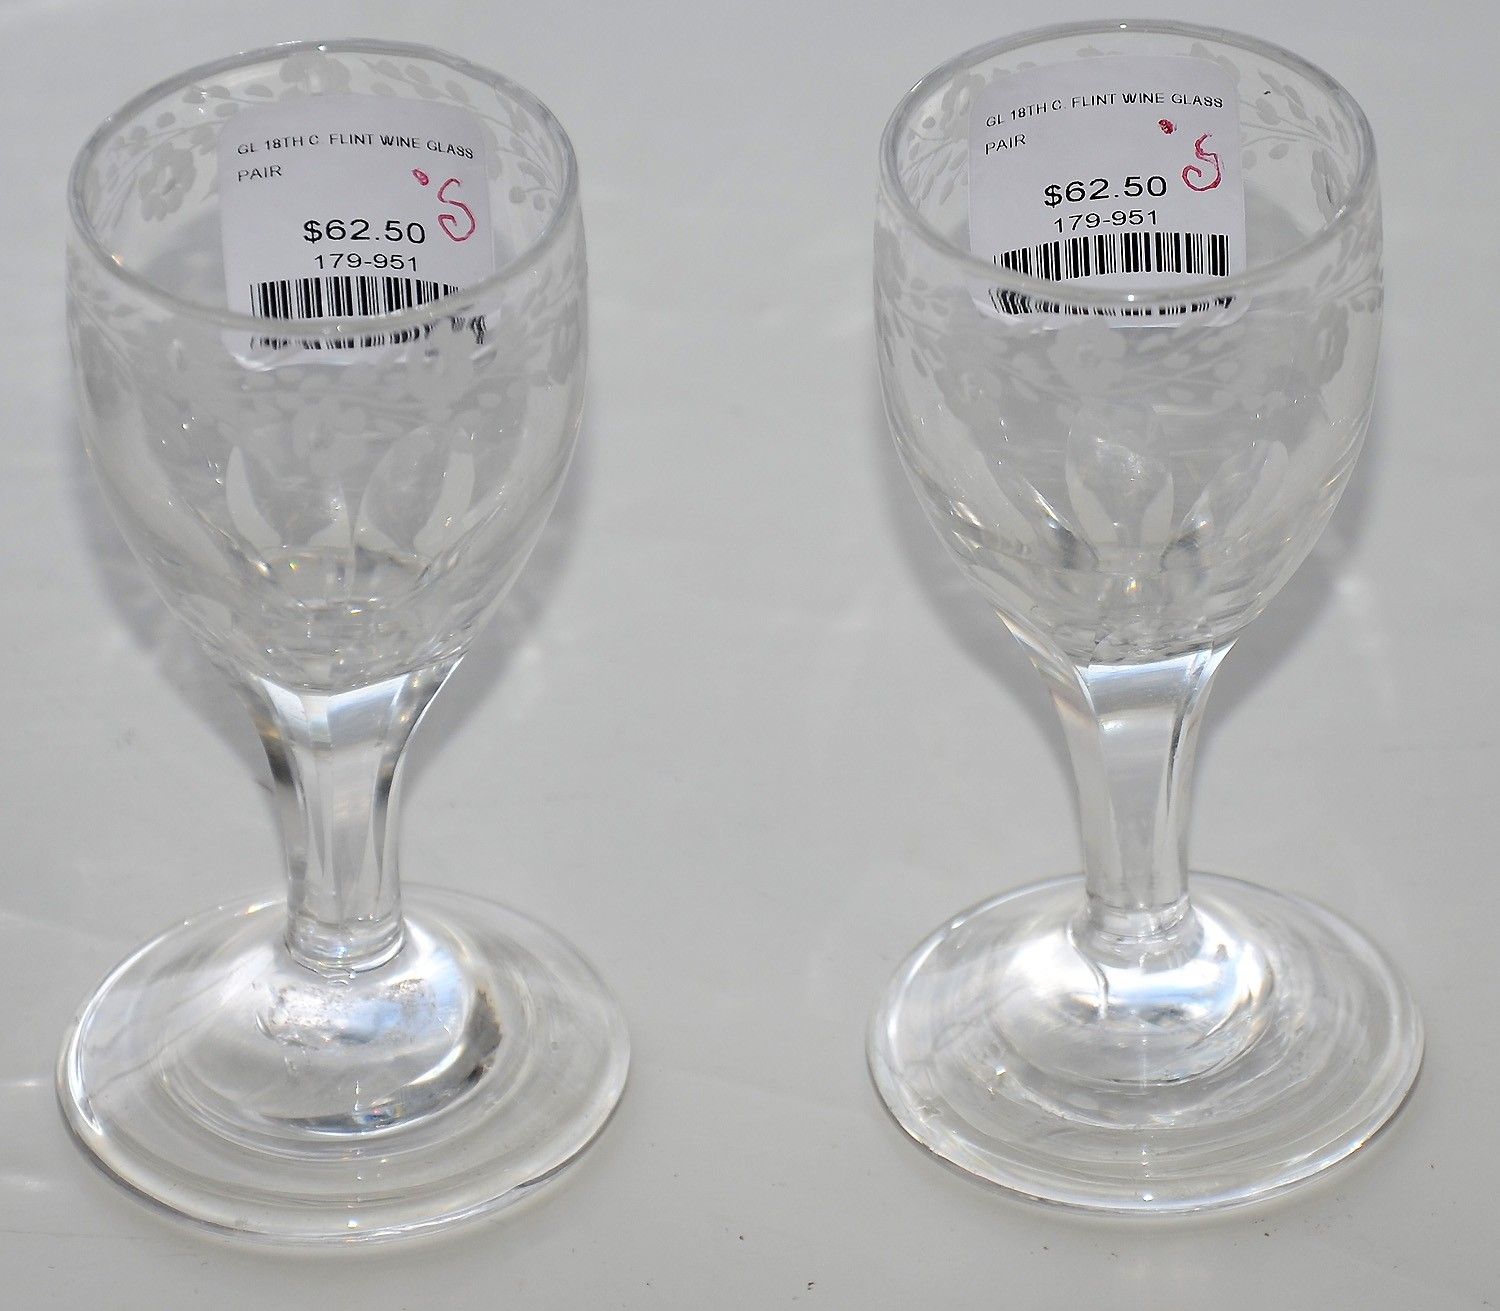 PAIR OF 18TH CENTURY ETCHED CORDIAL WINE GLASSES